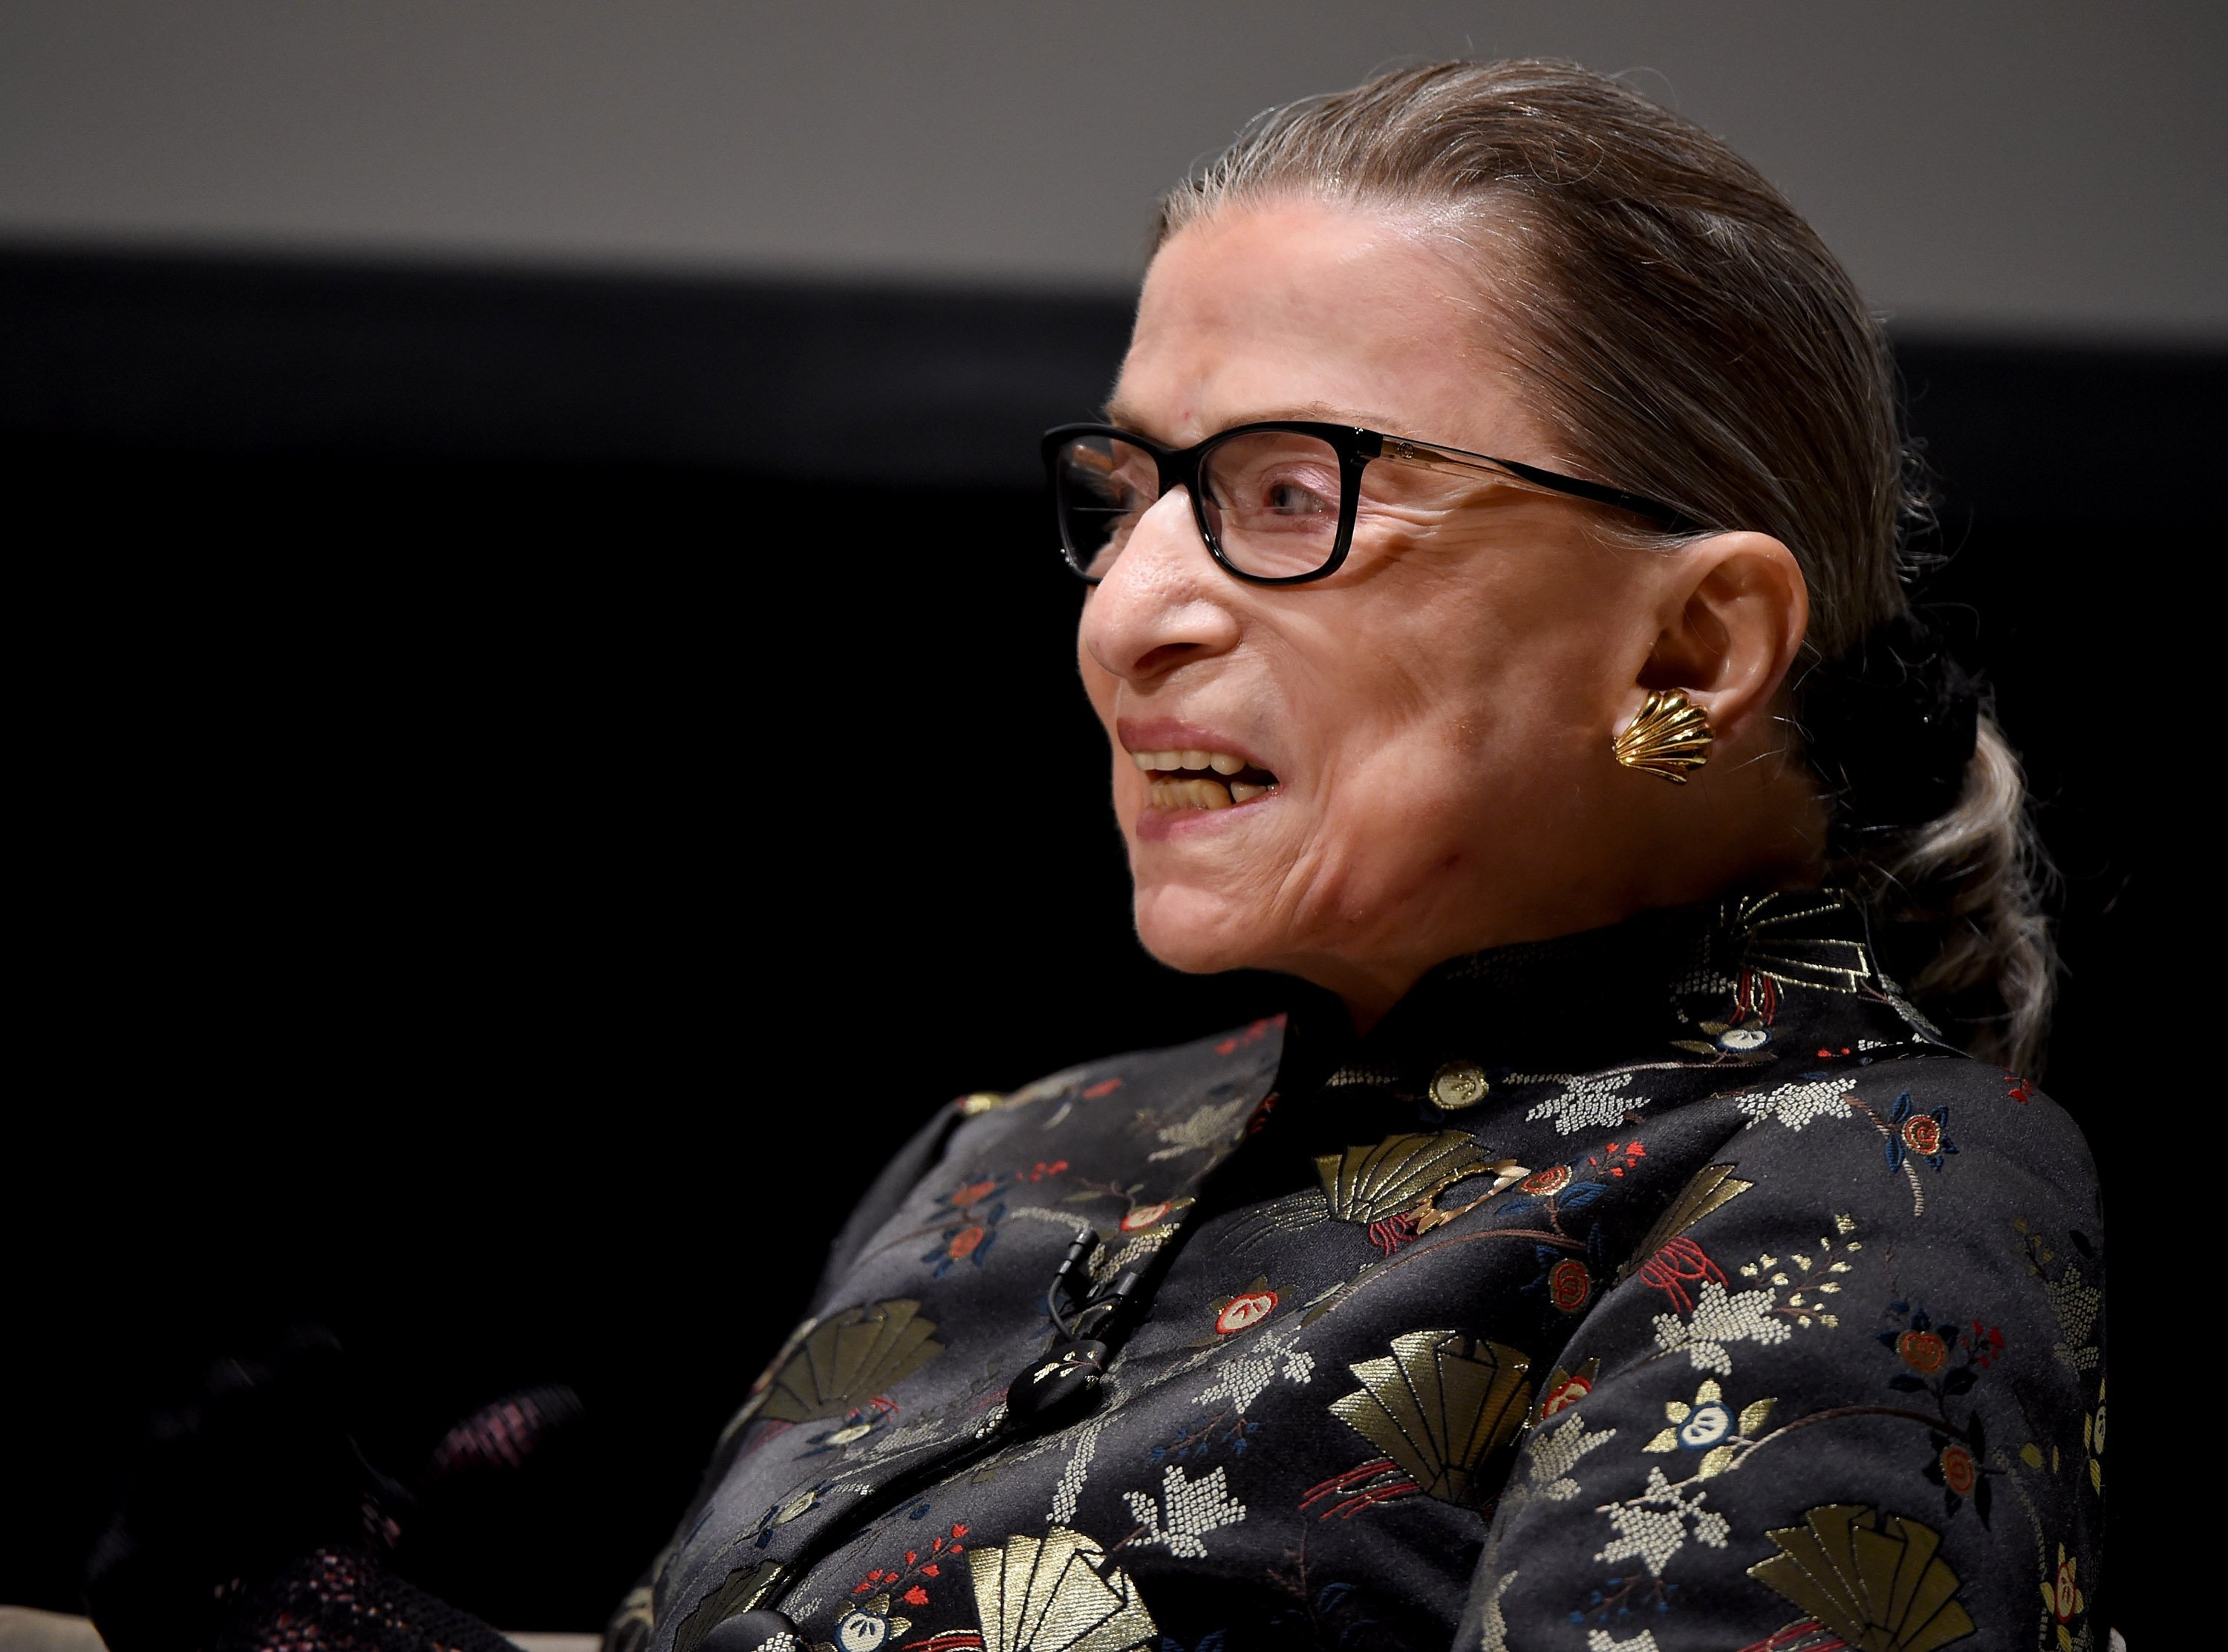 Supreme Court Justice Ruth Bader Ginsburg at 'An Historic Evening with Supreme Court Justice Ruth Bader Ginsburg' held at the Temple Emanu-El Skirball Center on September 21, 2016 in New York City | Photo: Getty Images